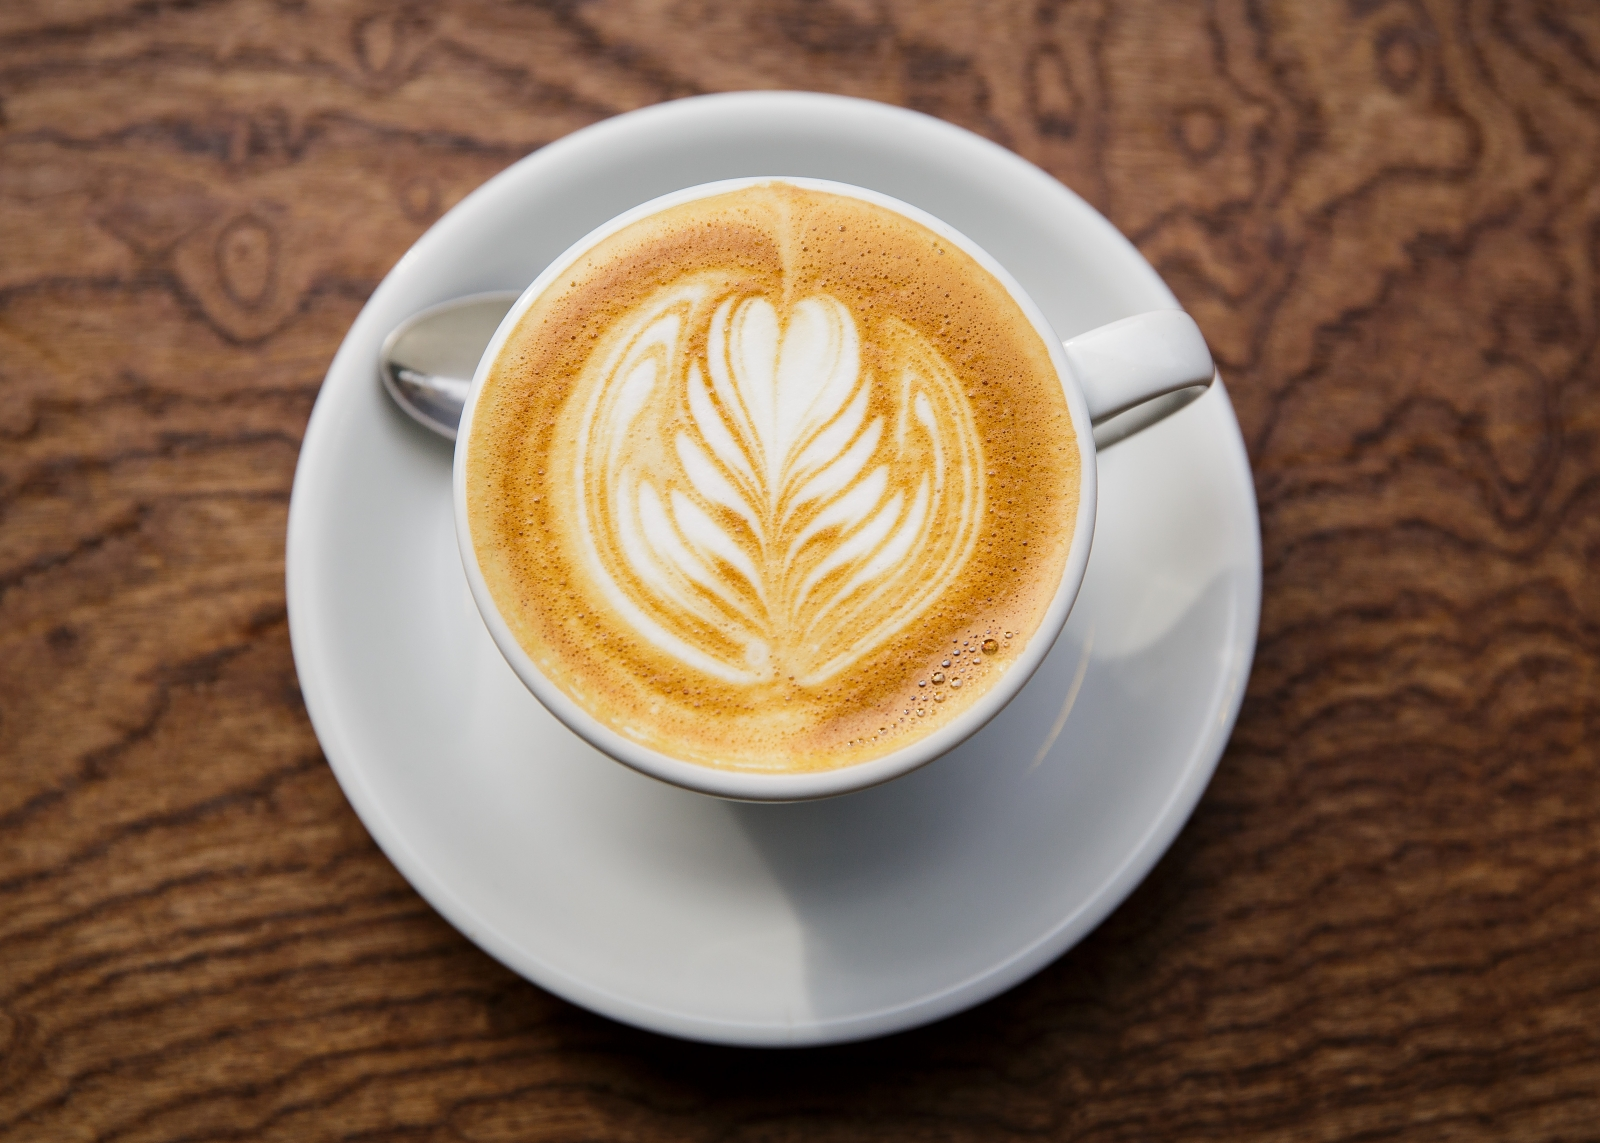 Is coffee good or bad for your health?